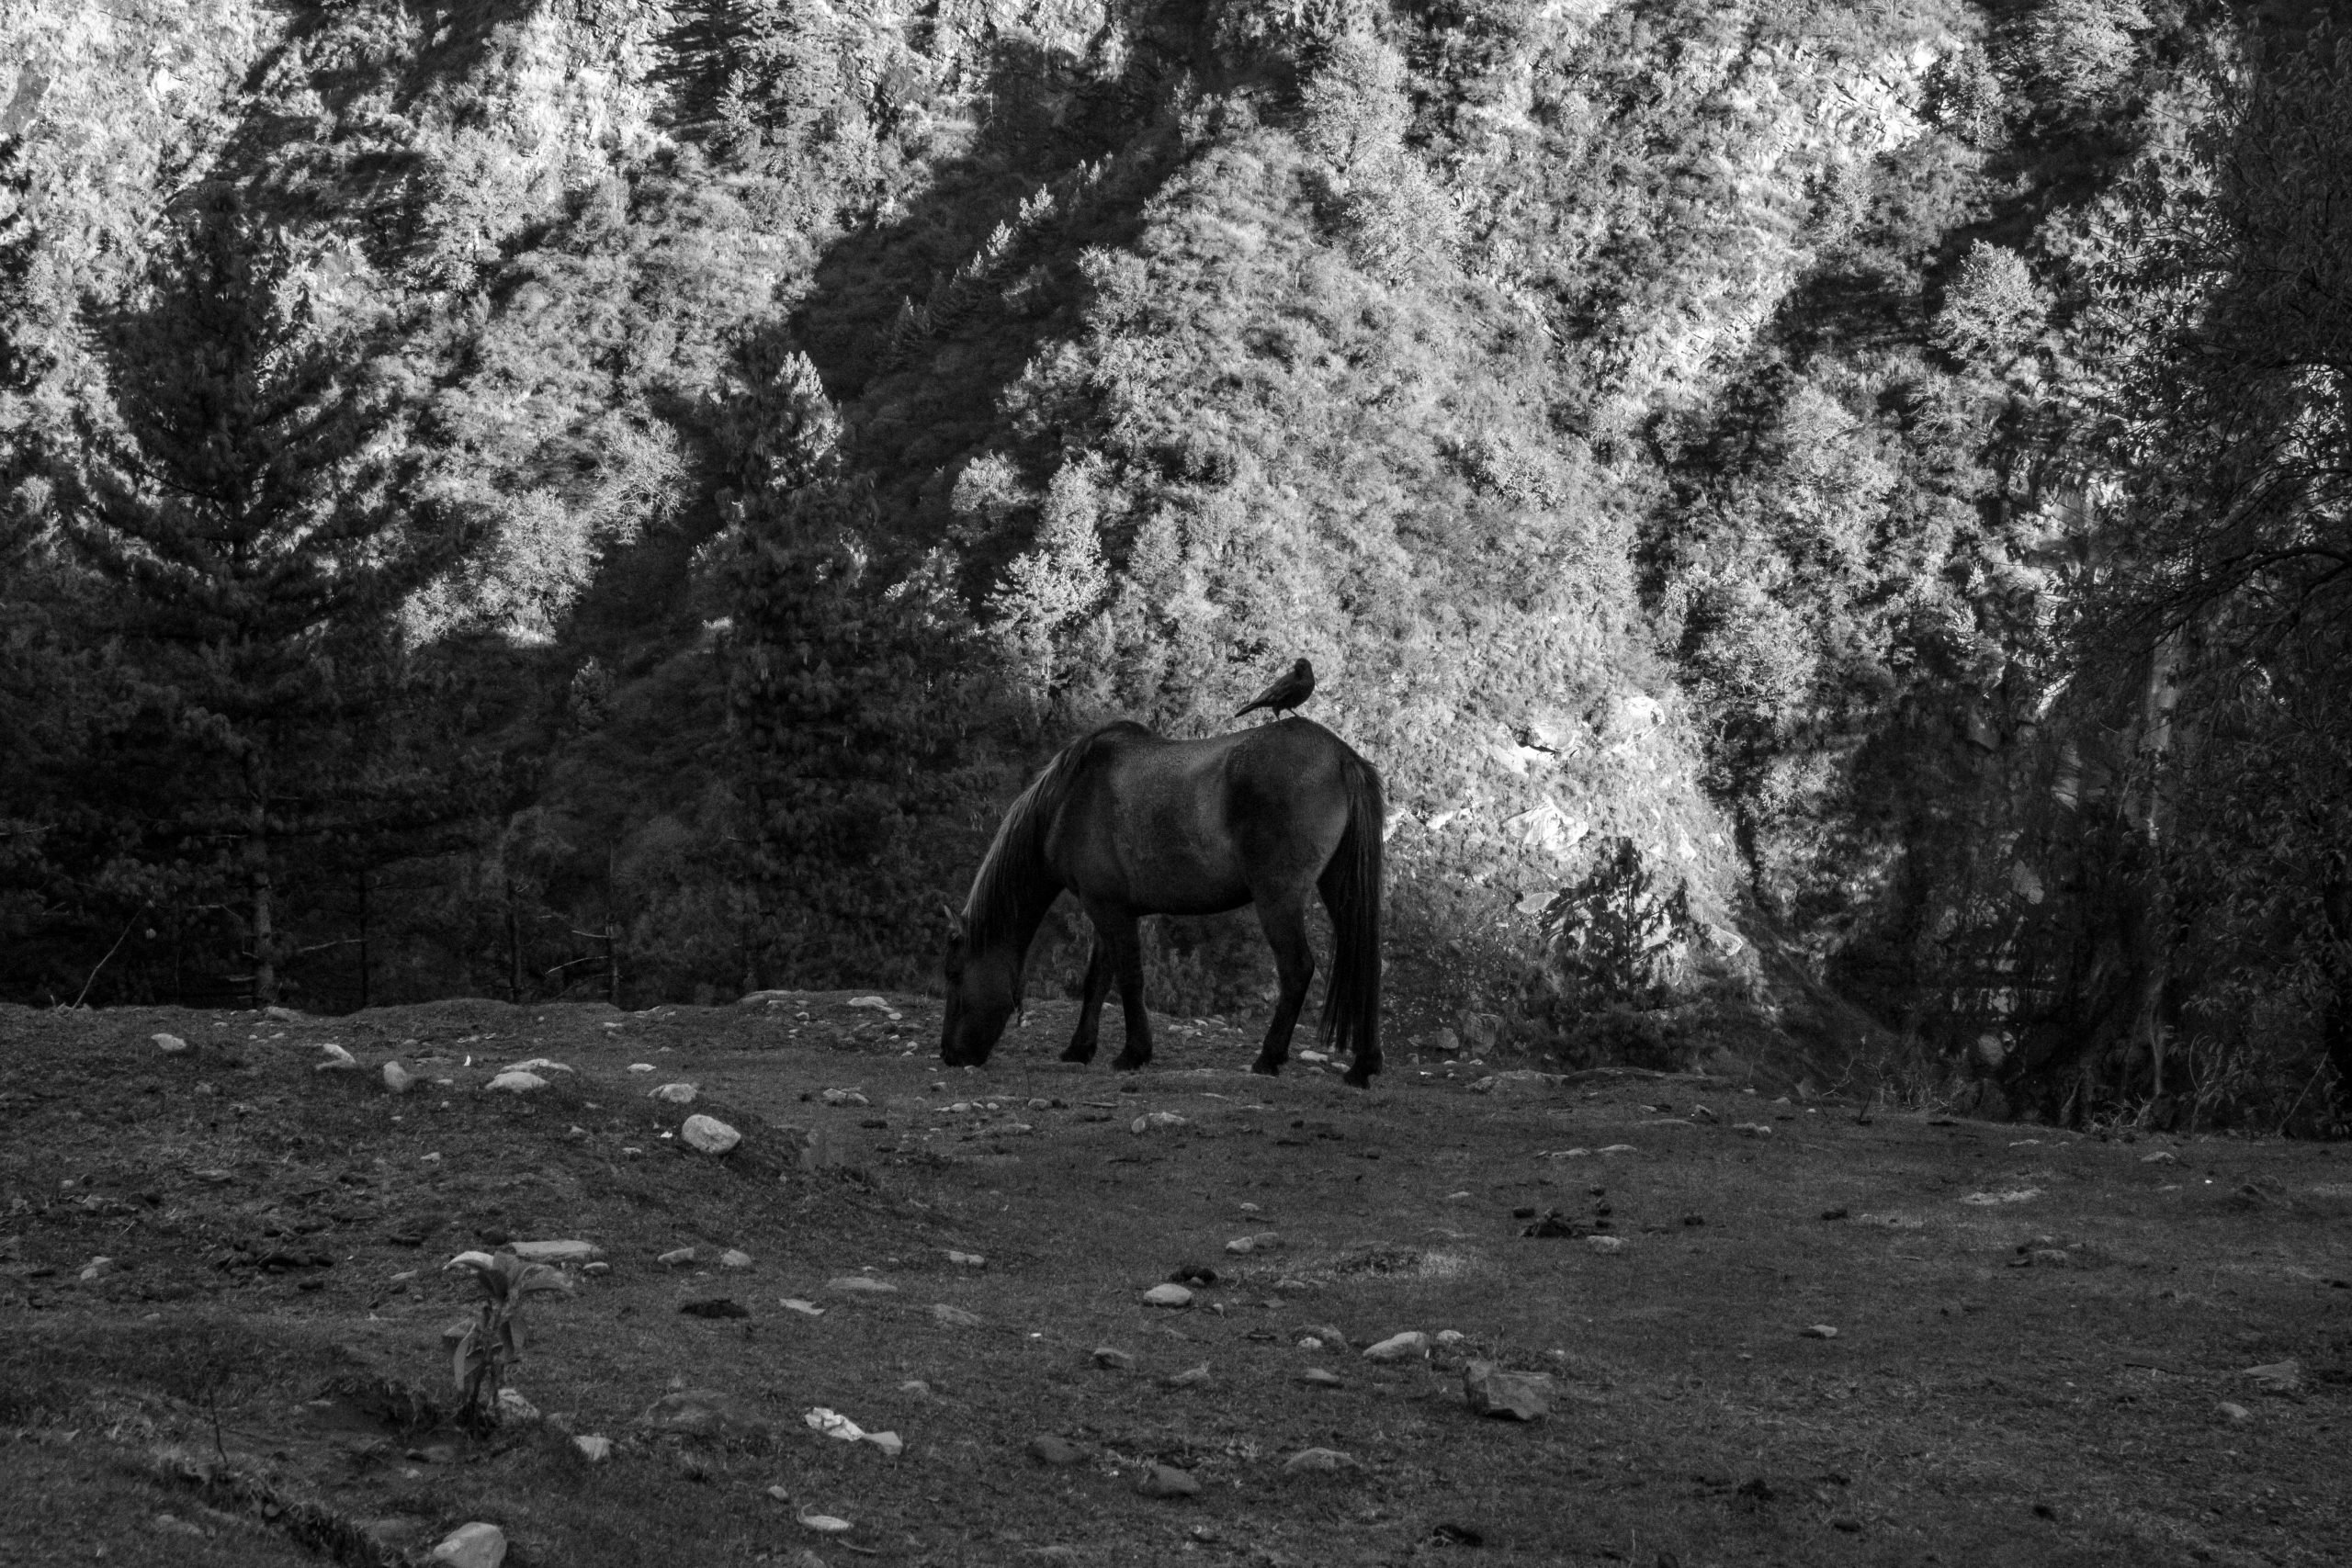 A horse grazing in the forest